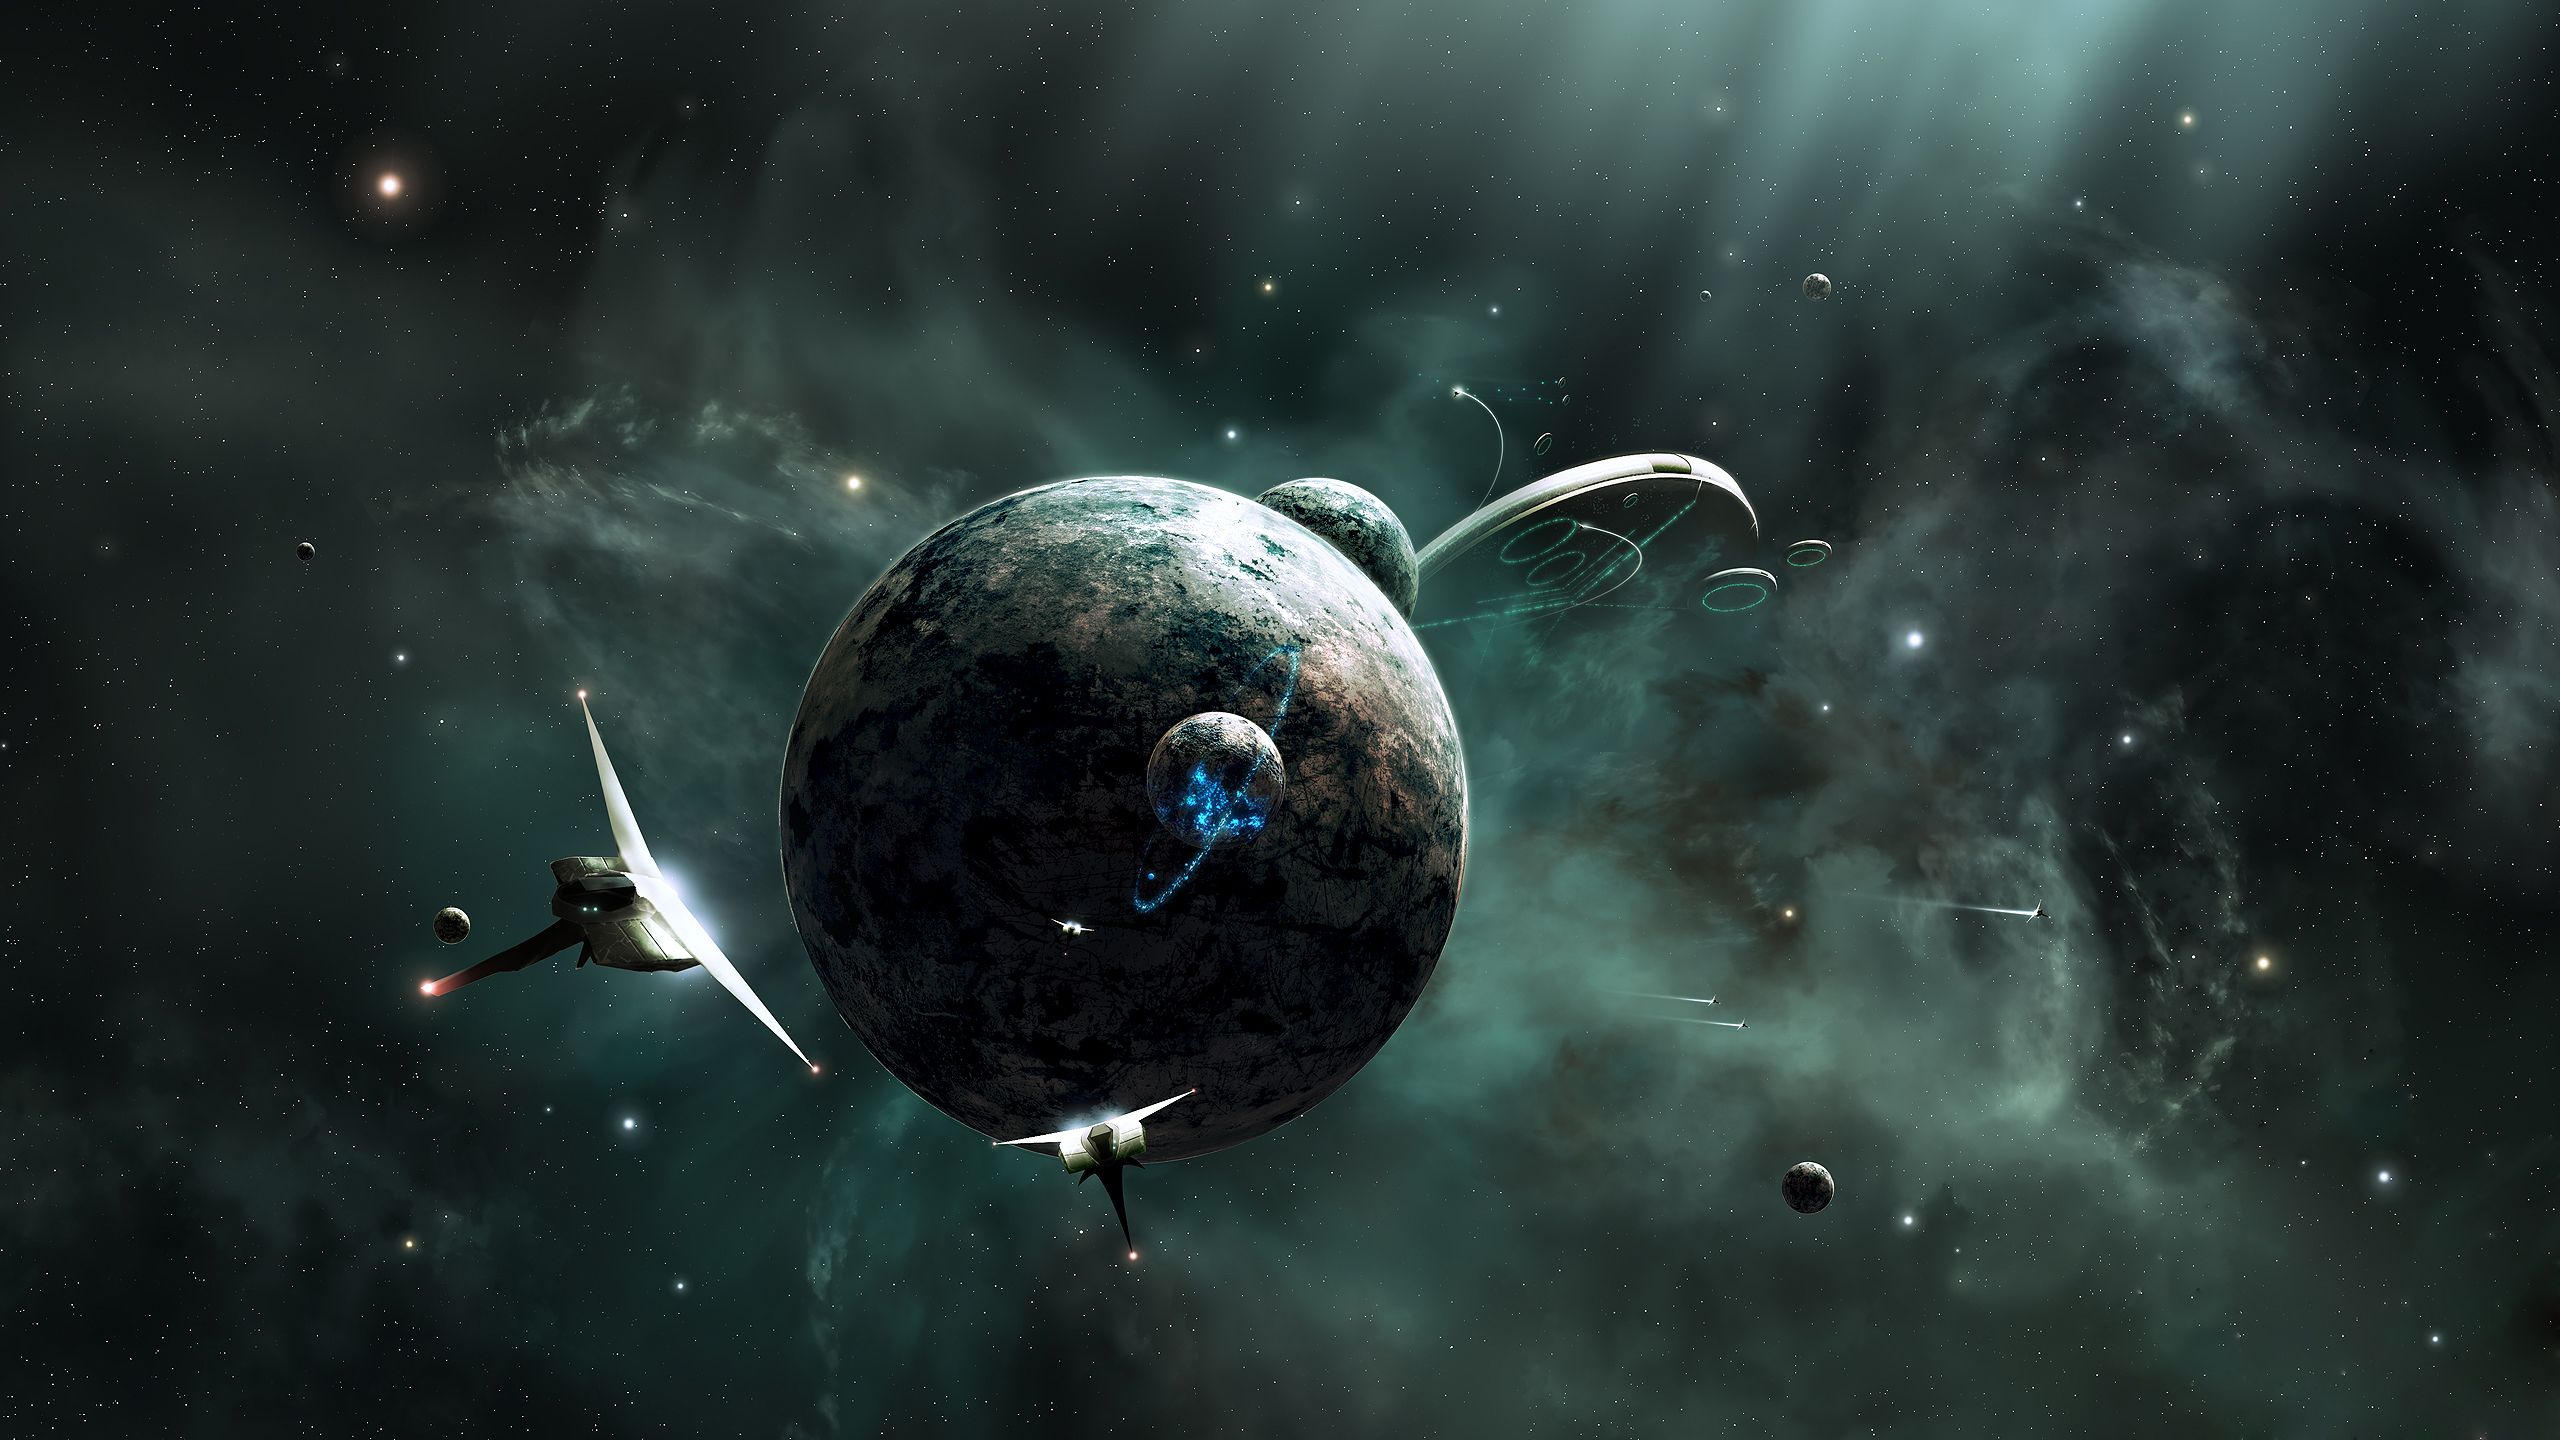 planet full hd wallpaper and background image | 2560x1440 | id:199412